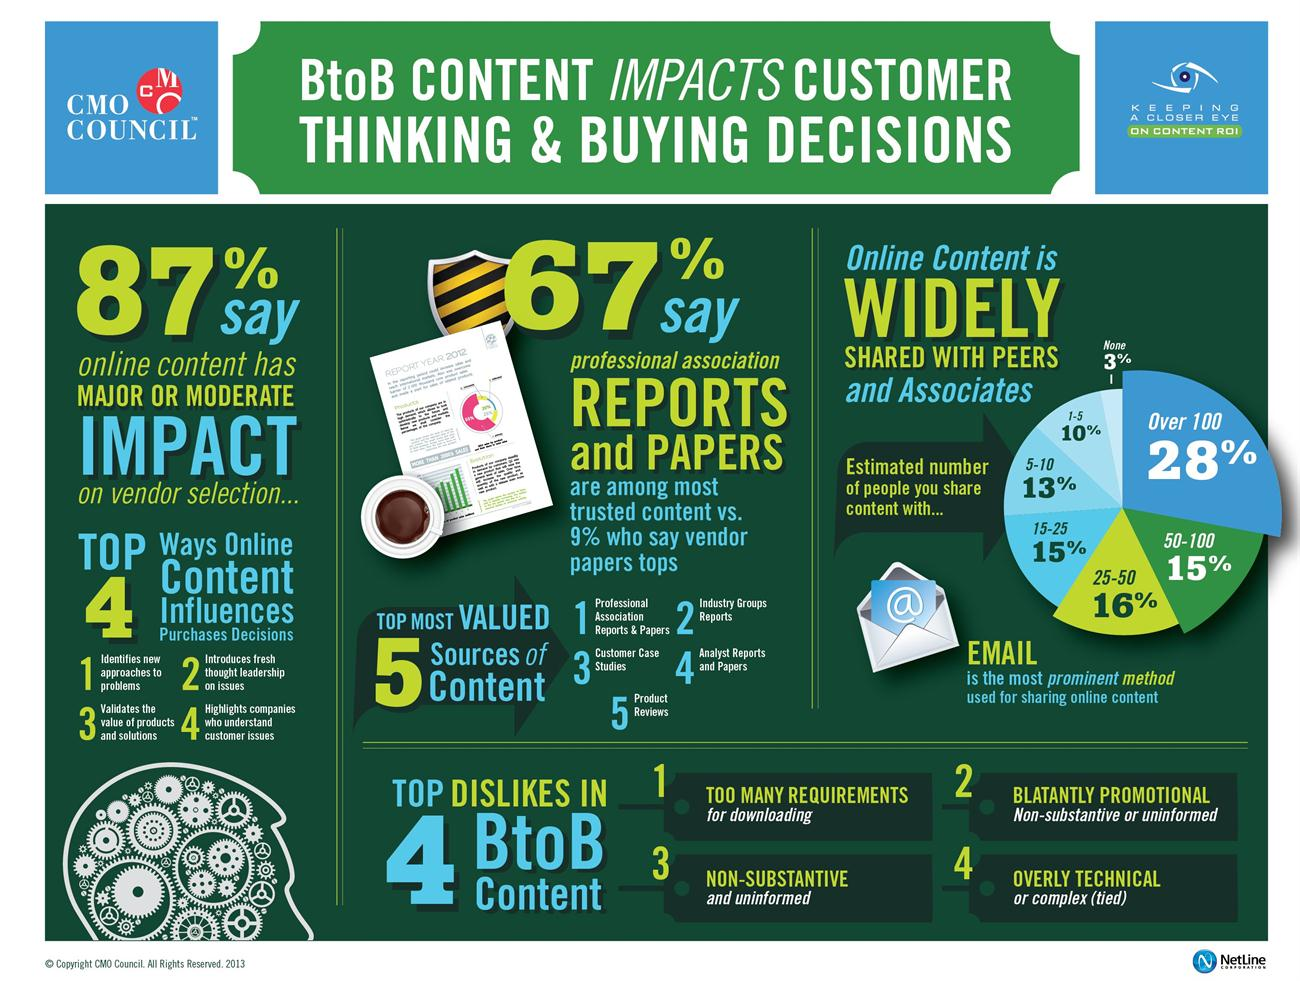 b2b-content-infographic-cmo-council-2013